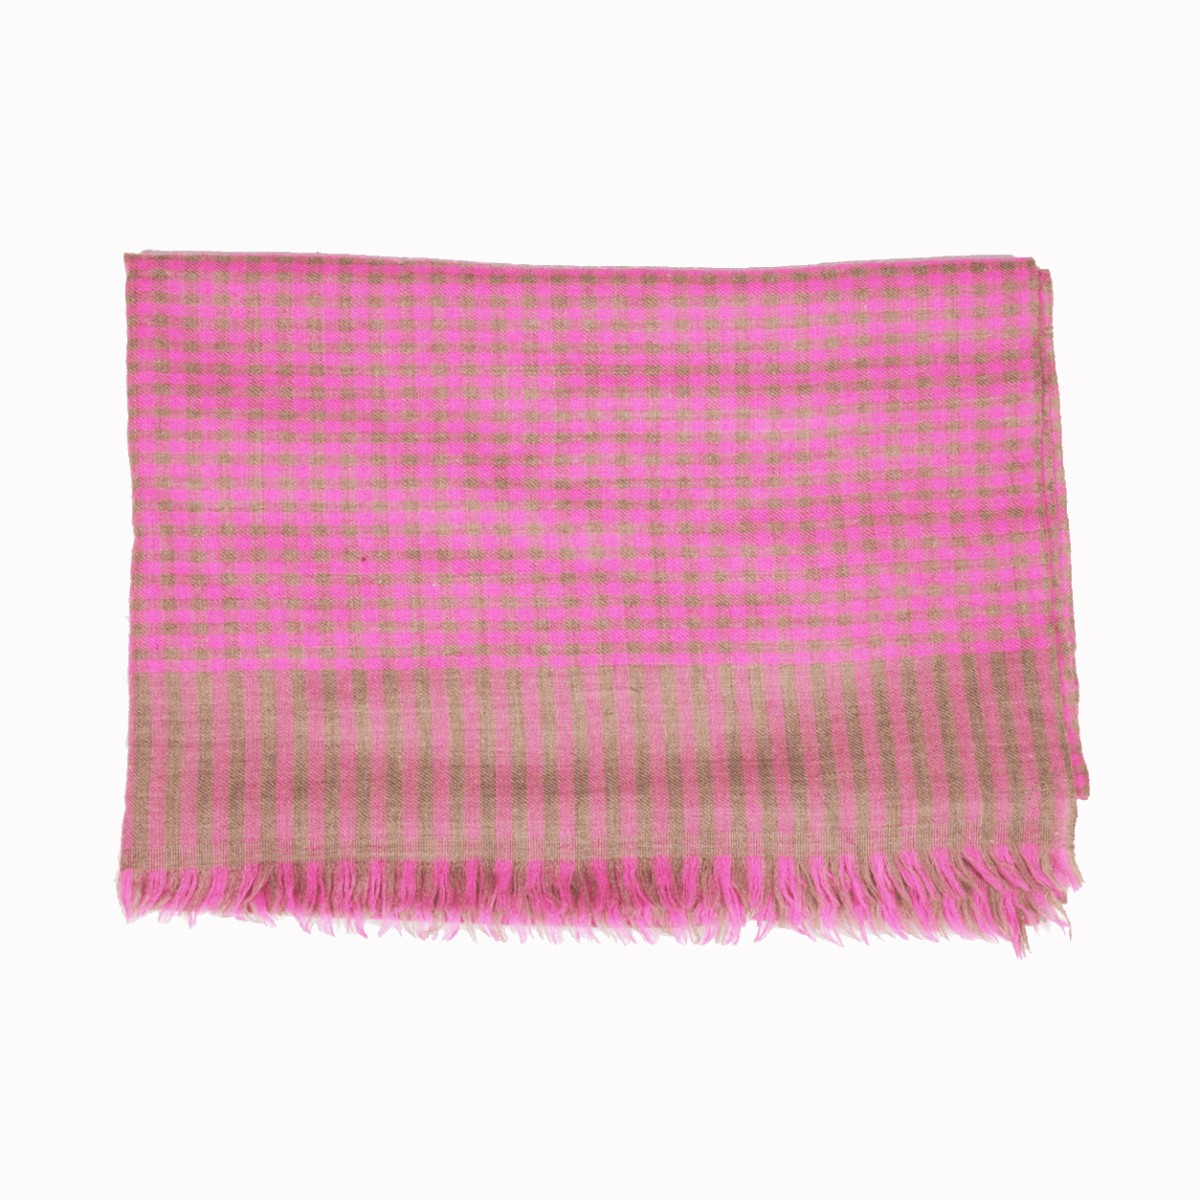 Elias natural and pink pashmina stole